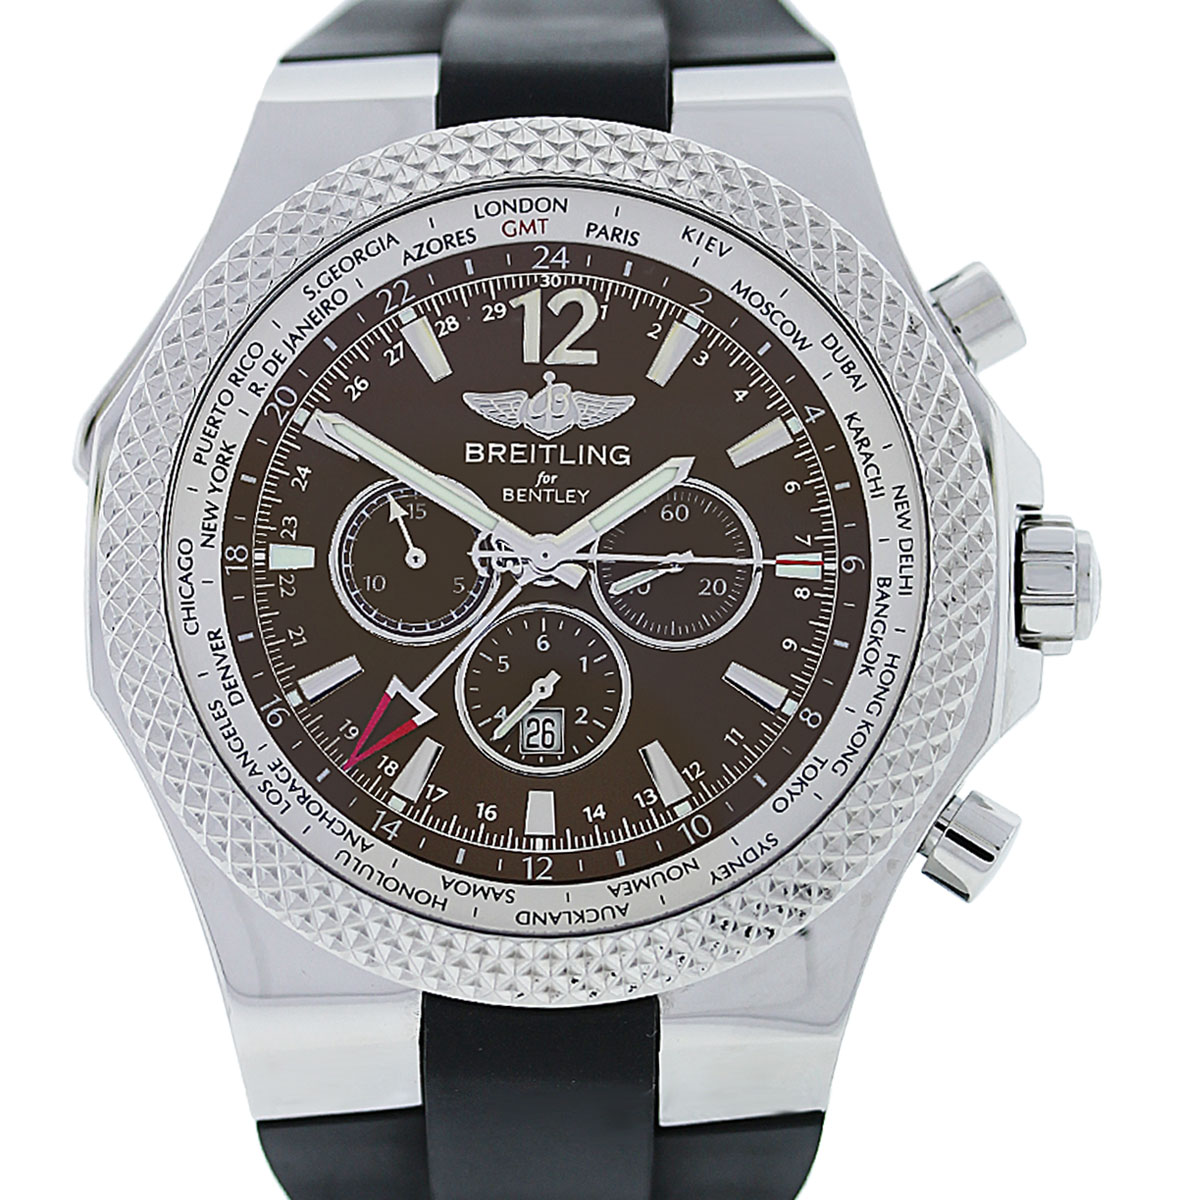 Breitling For Bentley A47362 Special Edition GMT World